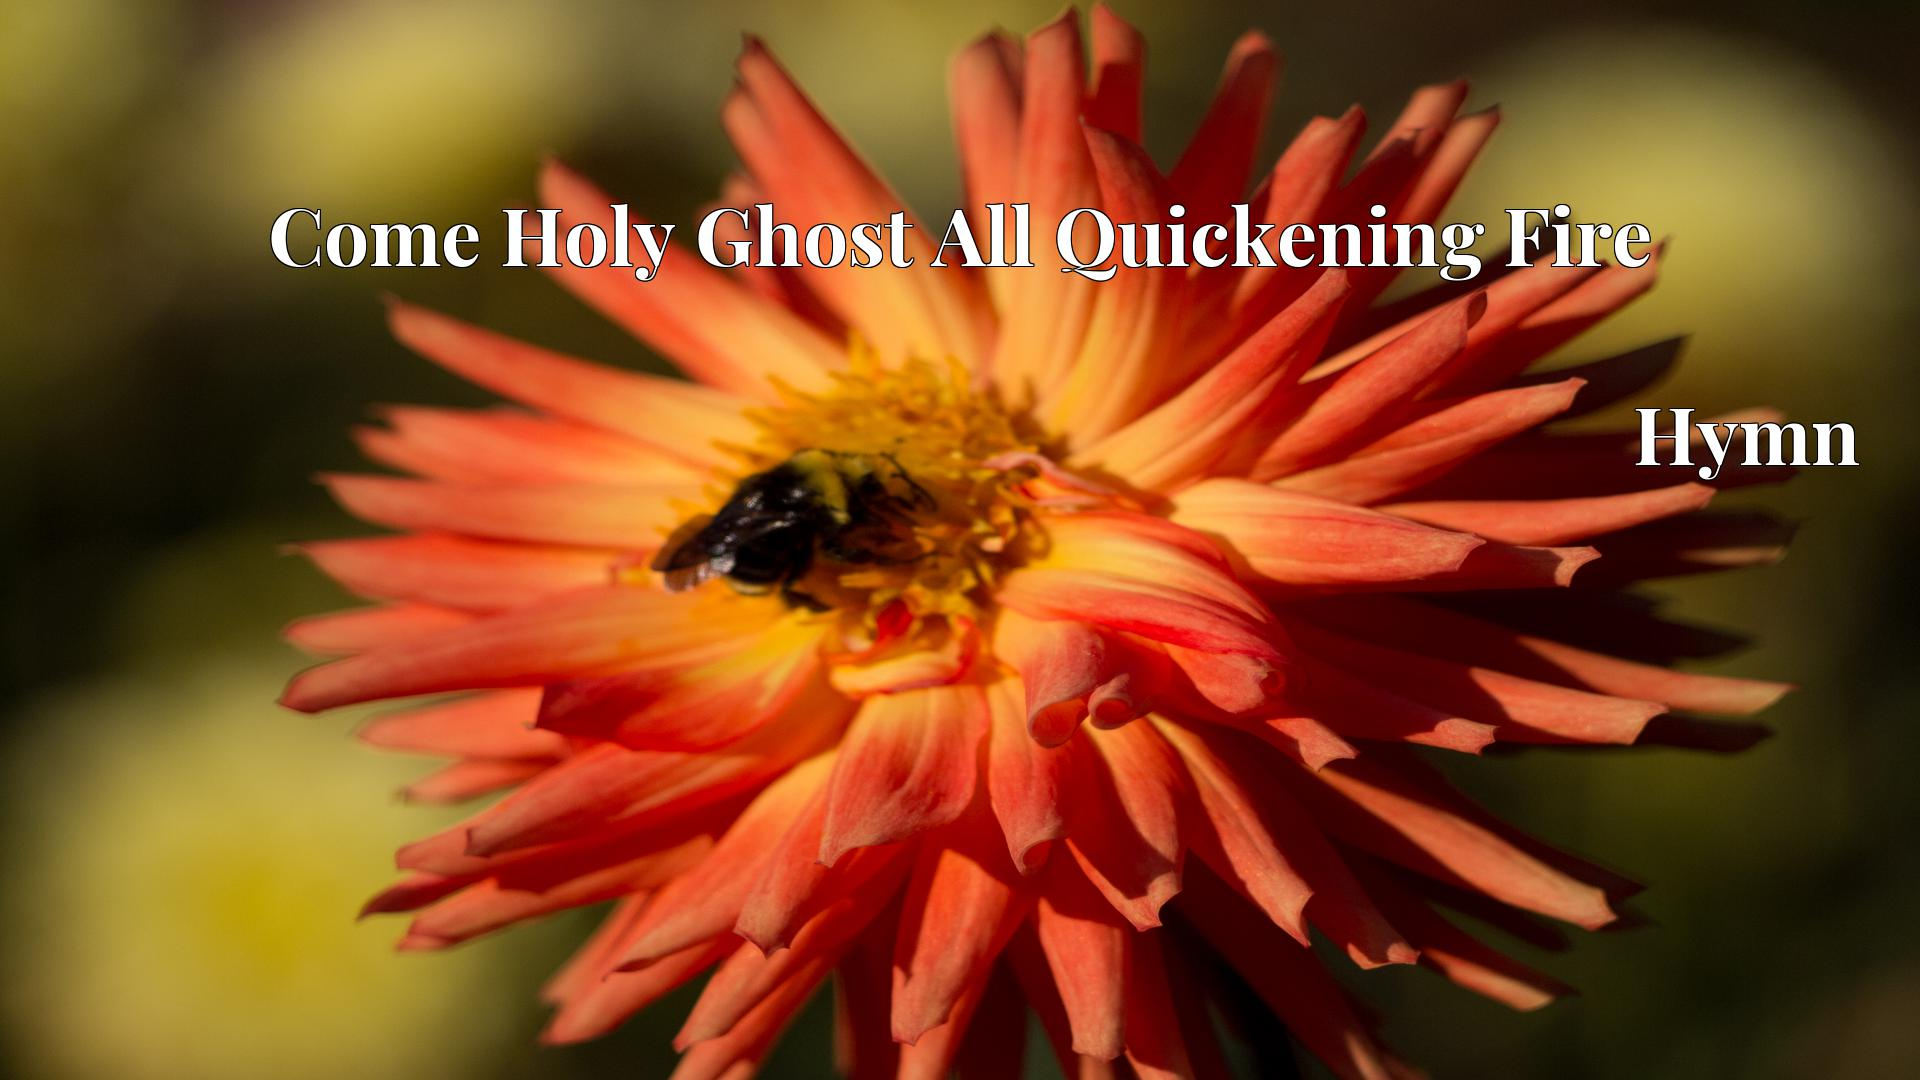 Come Holy Ghost All Quickening Fire - Hymn